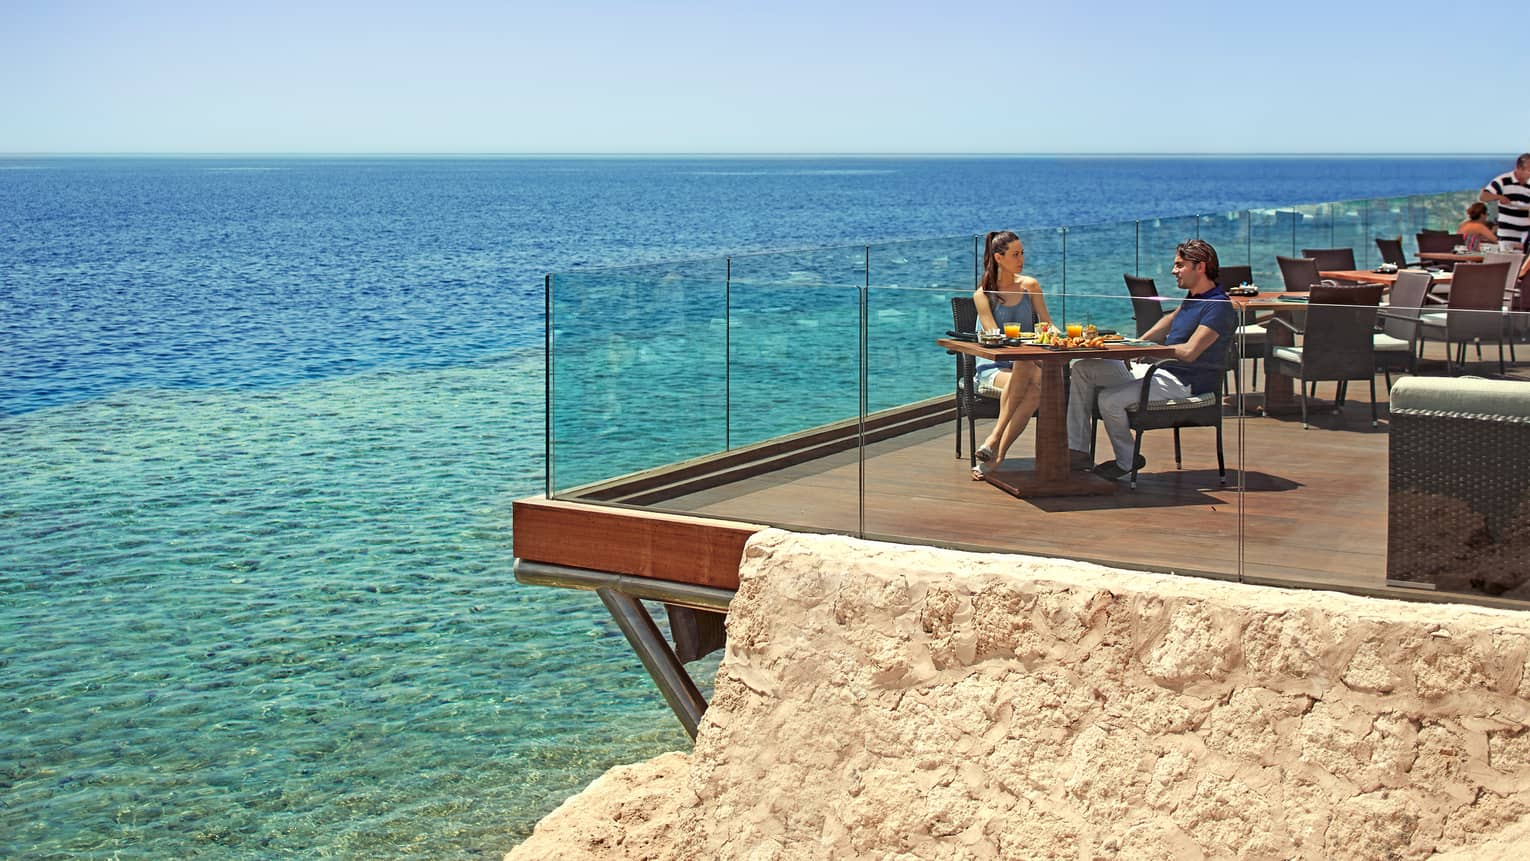 Couple dines at sunny corner patio table by glass balcony overlooking turquoise waters of Red Sea